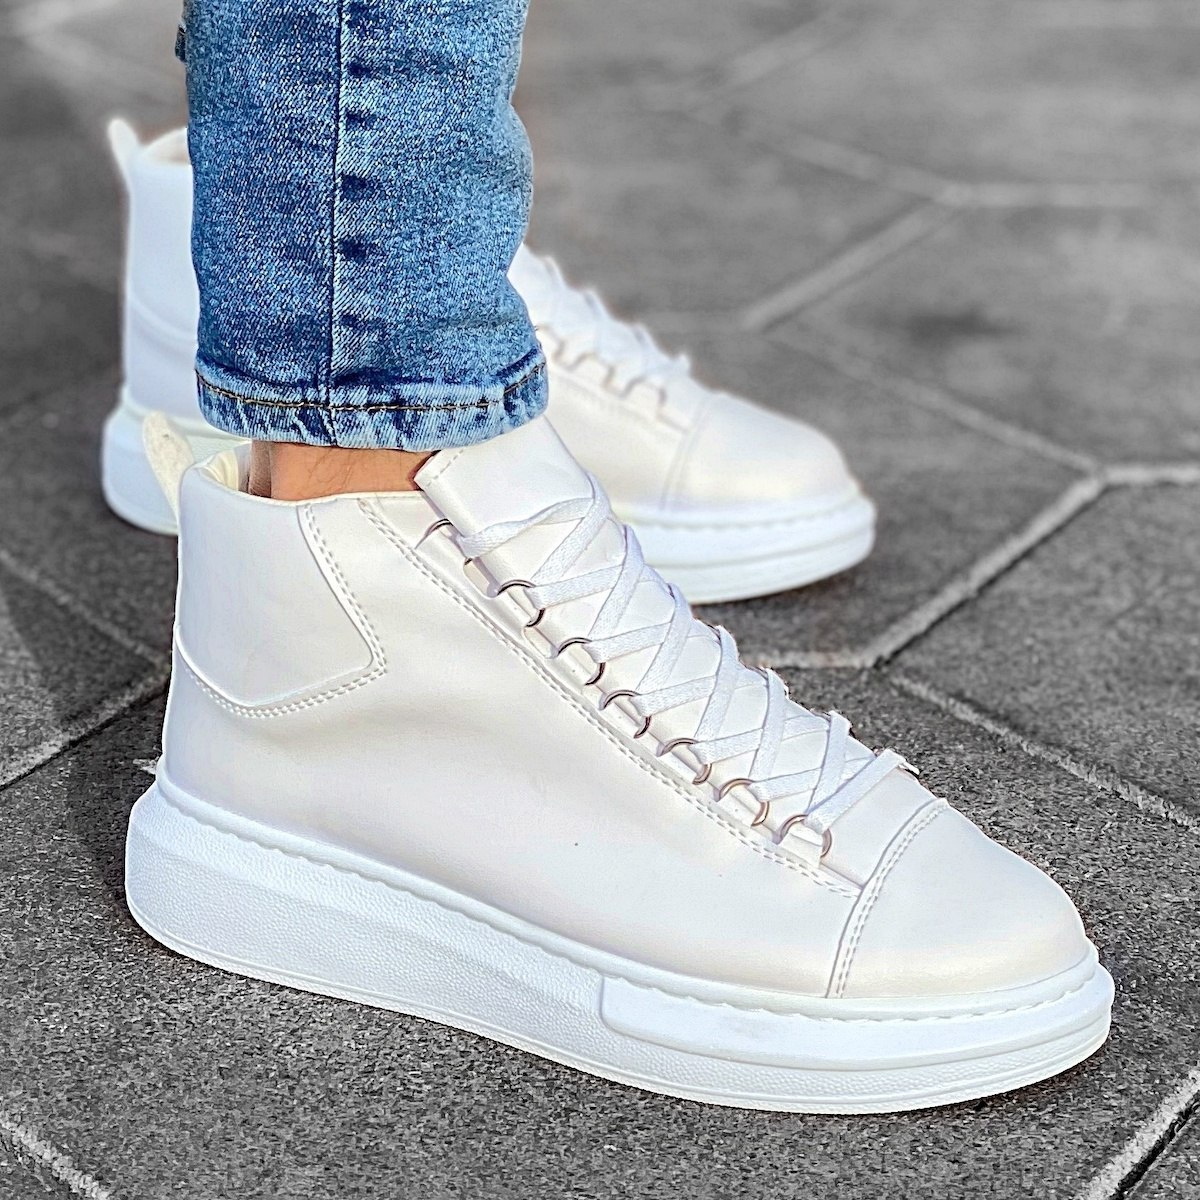 Hype Sole Mox High Top Sneakers in White